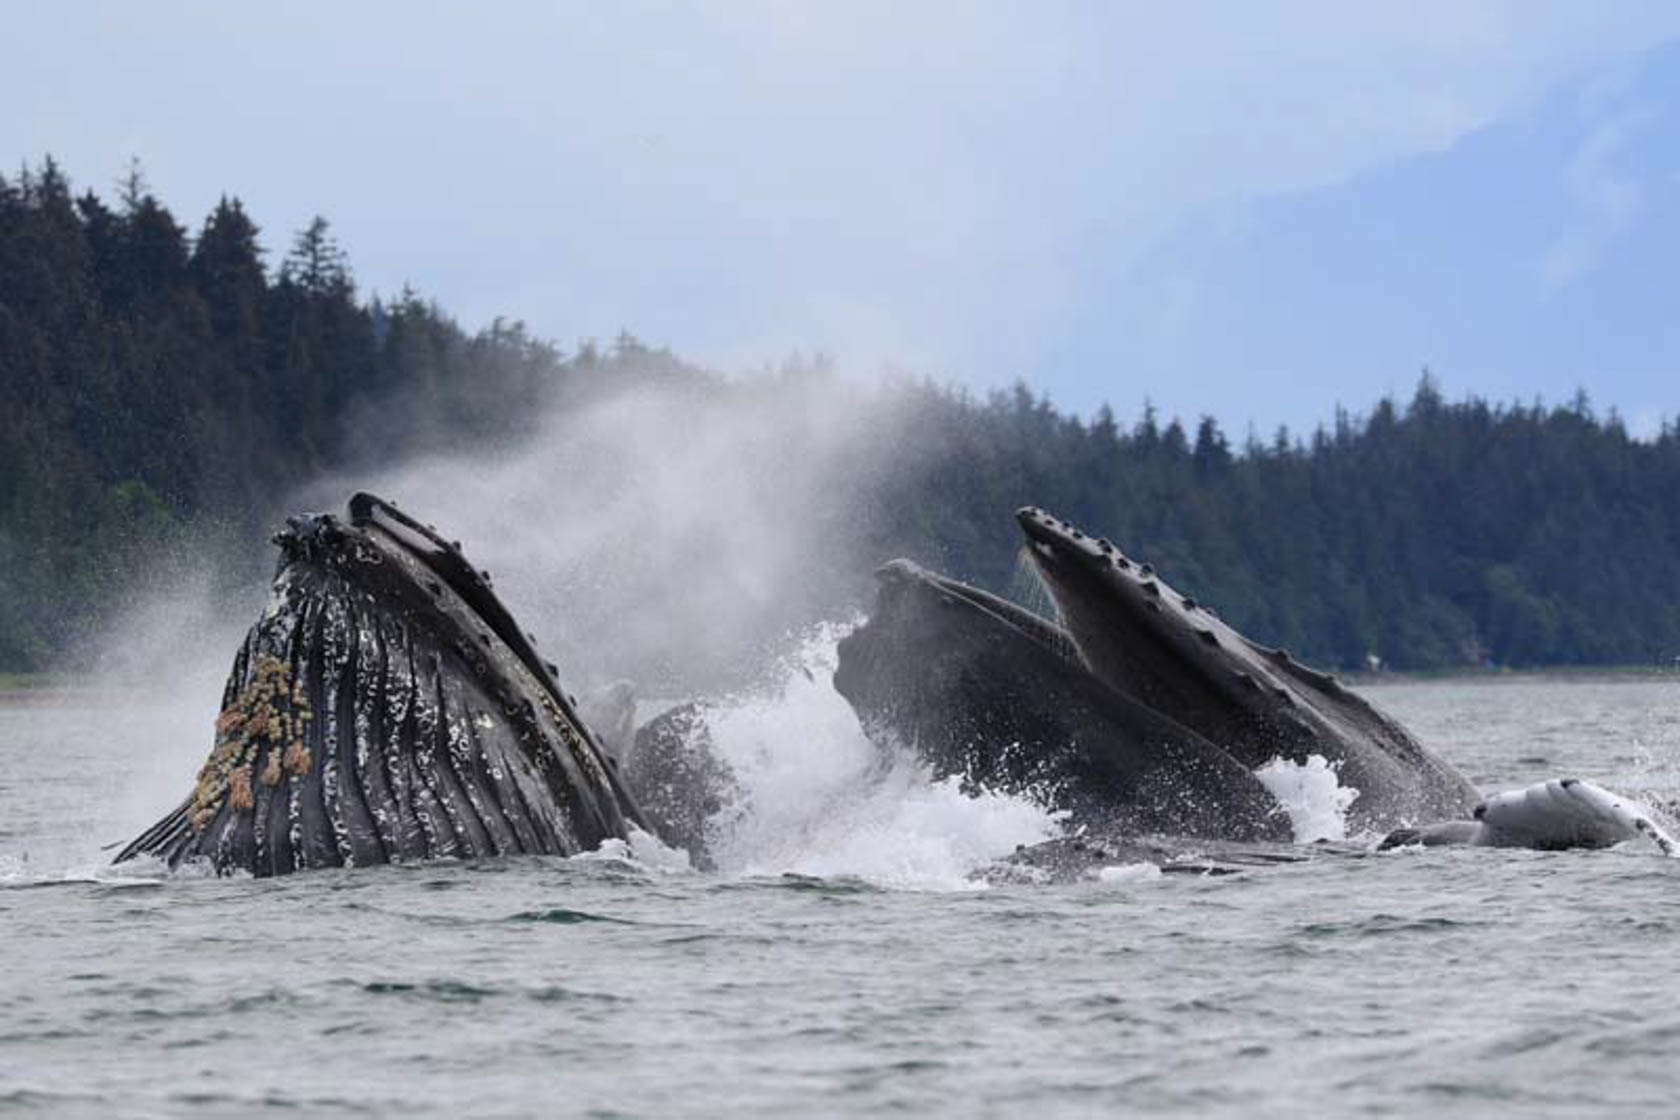 Breaching whales taken on Canon EOS 7D Mark II camera